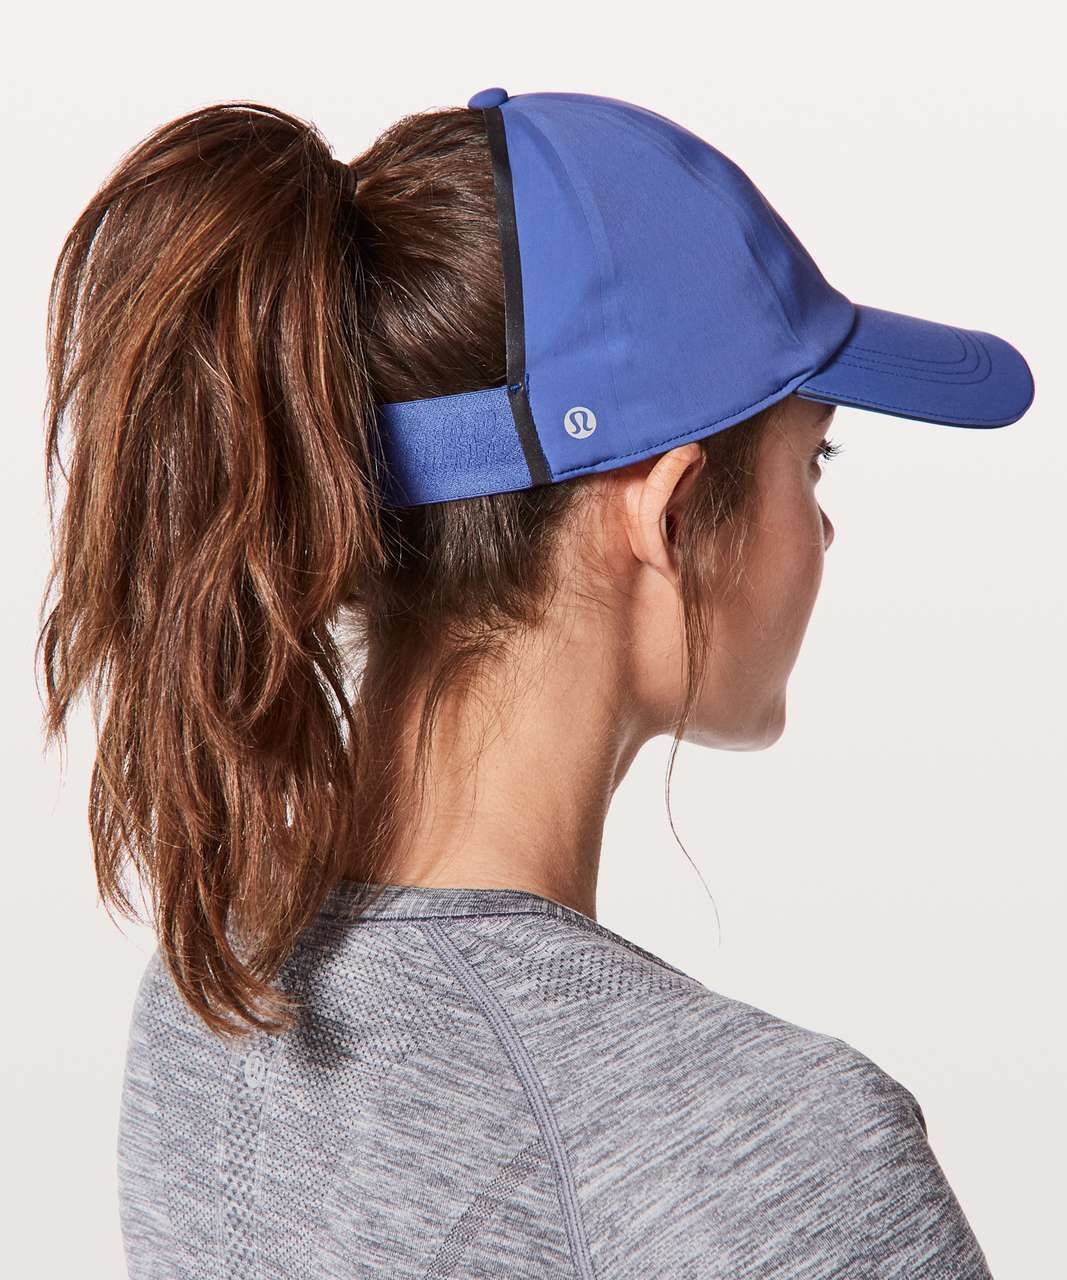 58619e6b481d7 Color  moroccan blue. Run fast and let your hair free in this sweat-wicking  hat with a wide-back opening to help keep you cool.